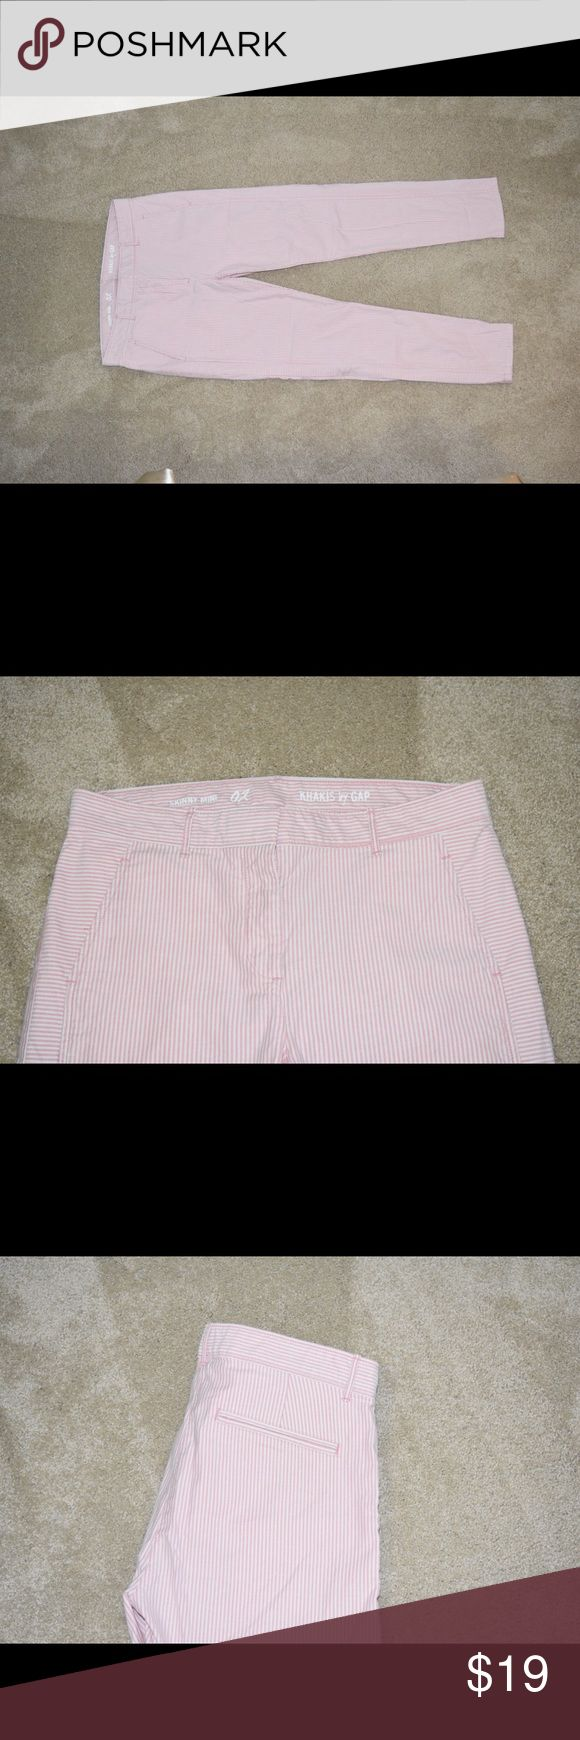 Women's Khaki pants Light pink and white stripped pants. Size two but I'm a 4 and they fit perfectly. GAP Pants